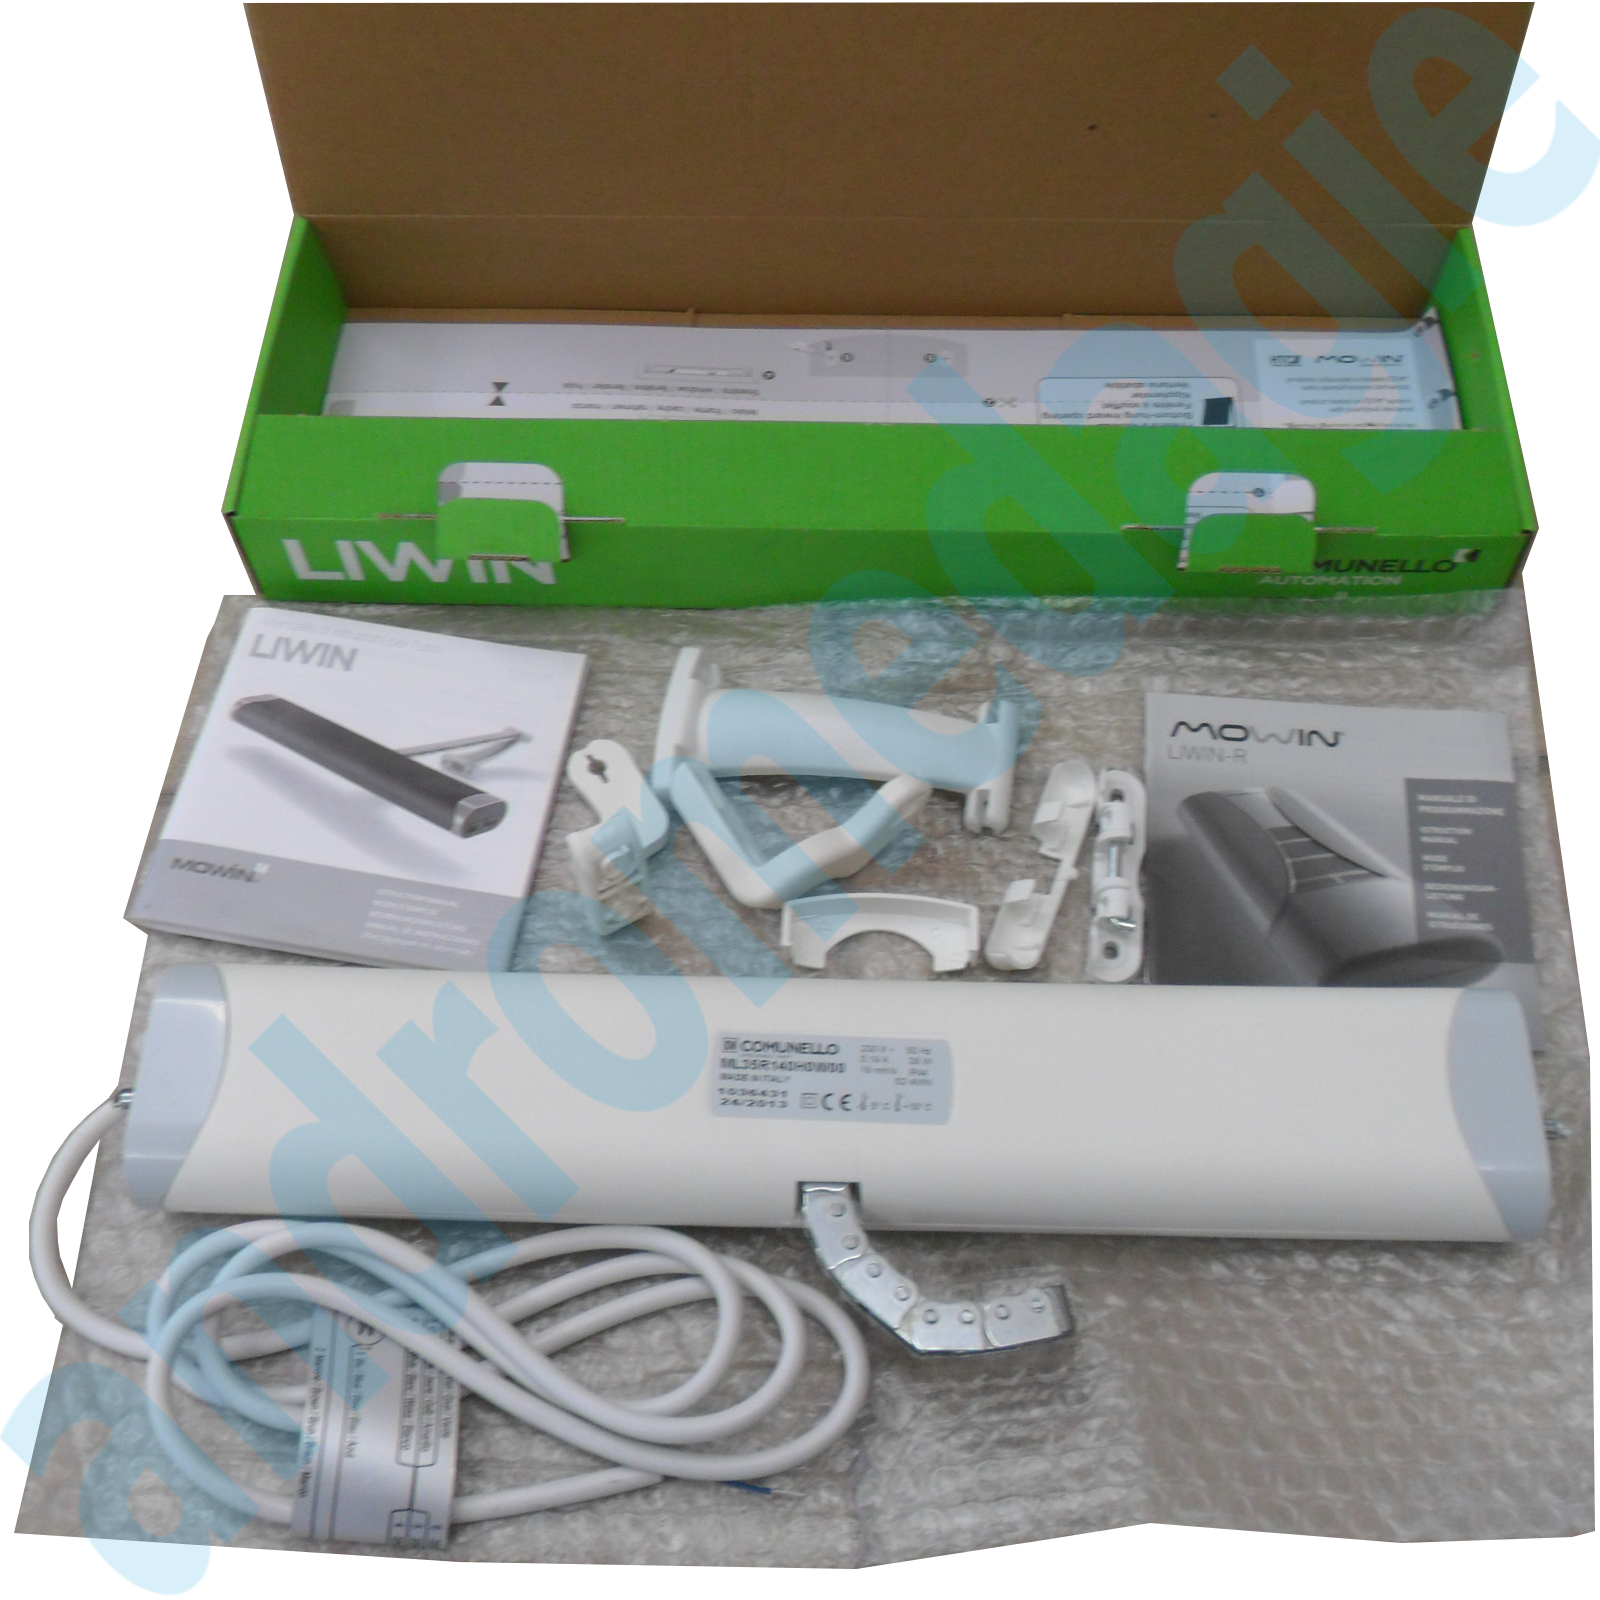 LIWIN RADIO 350N 230V WHITE + R1 CONTROL WHITE + SUPPORT DORMER WINDOW WHITE